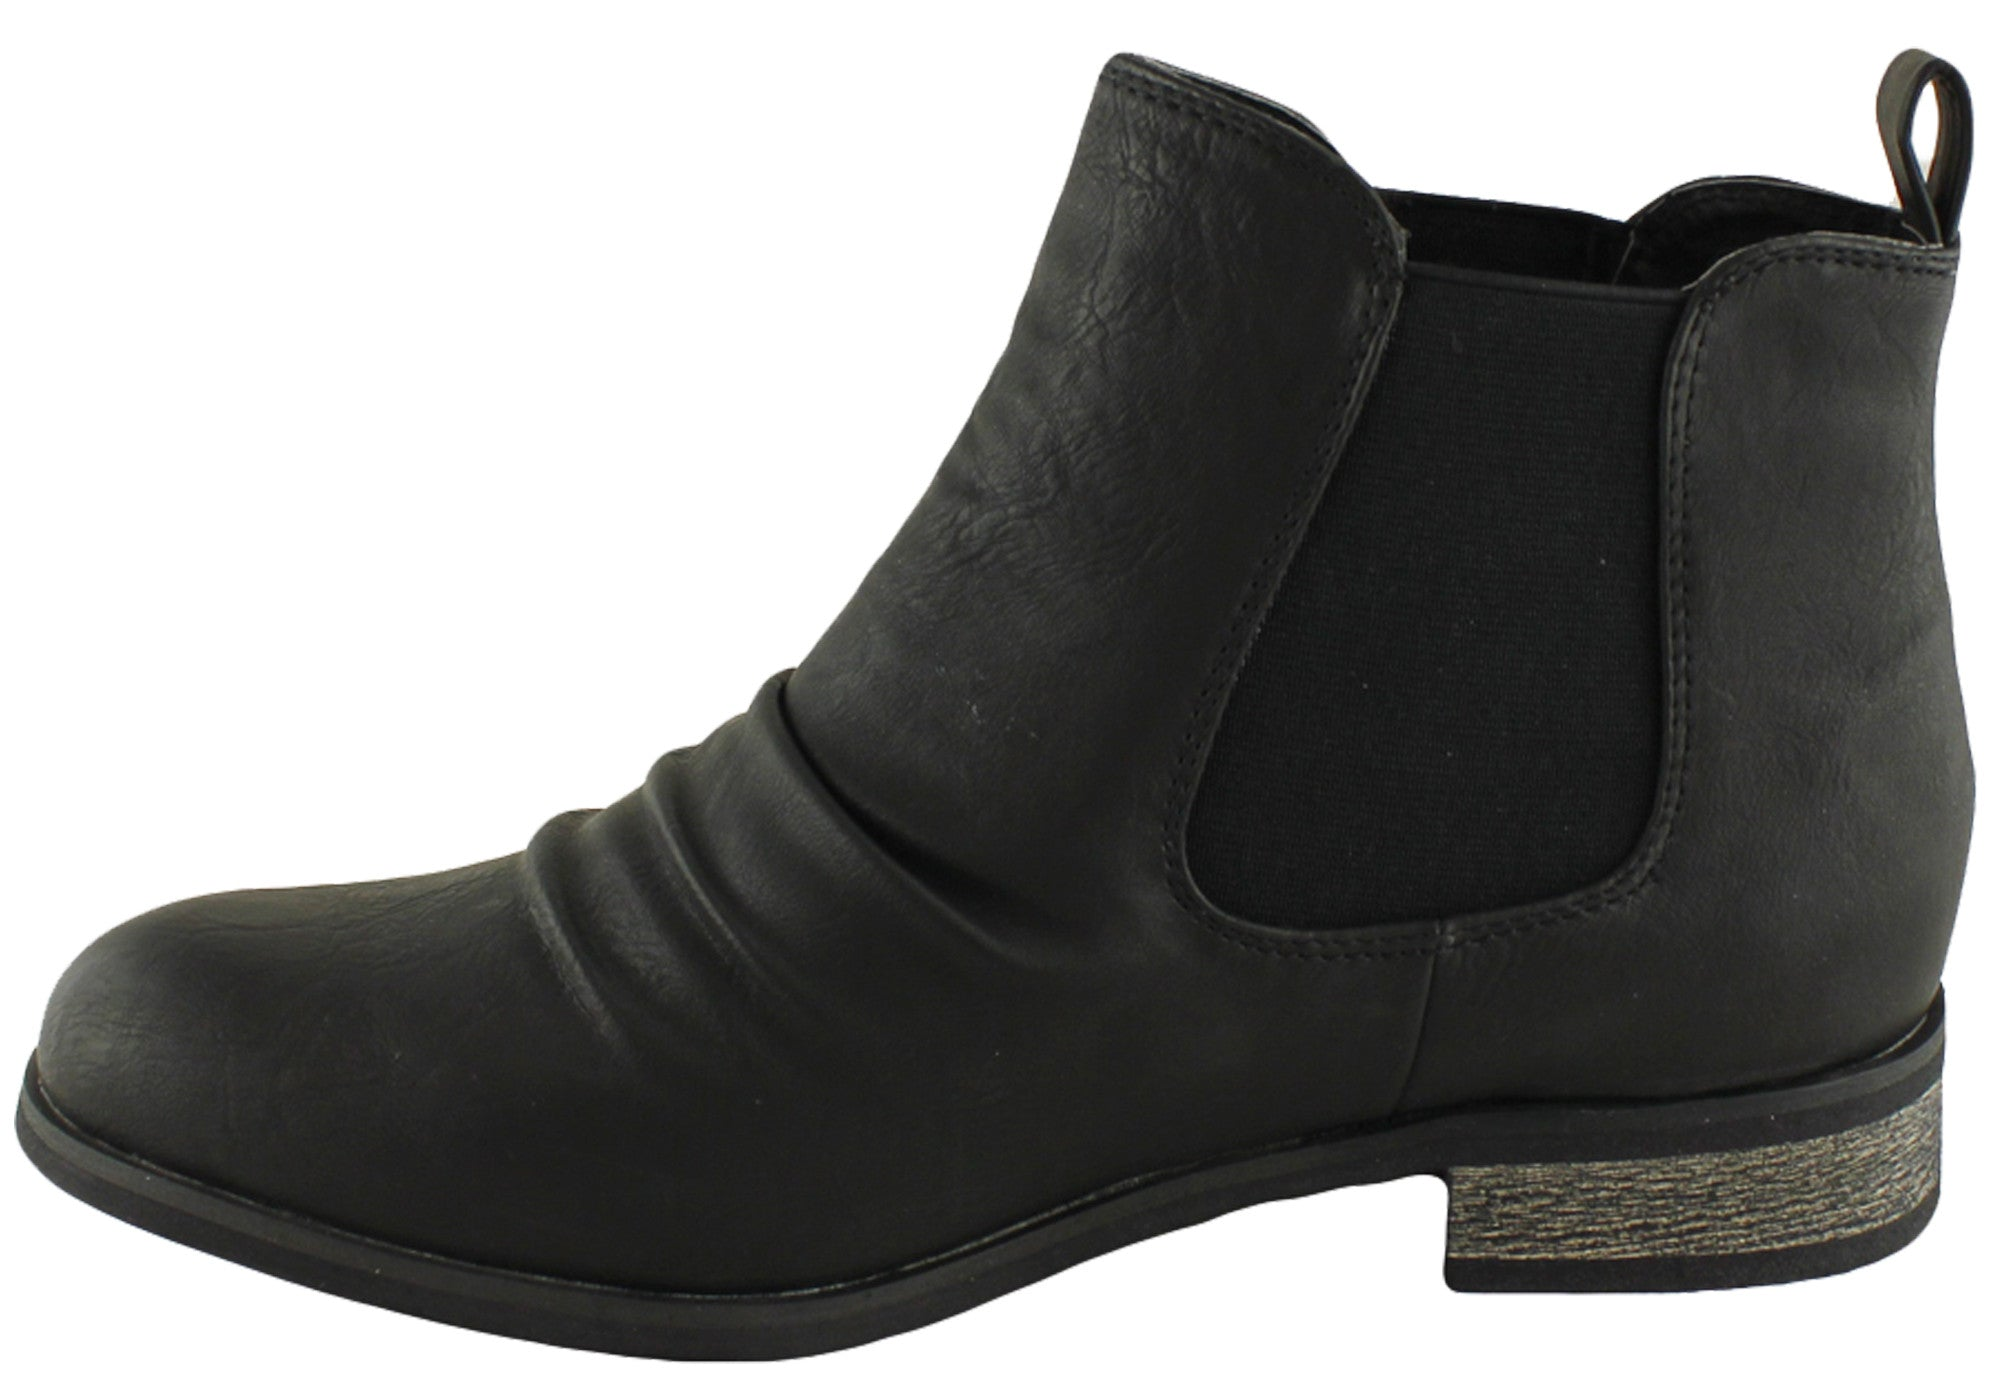 Lavish Squeaky Womens Fashion Ankle Boots